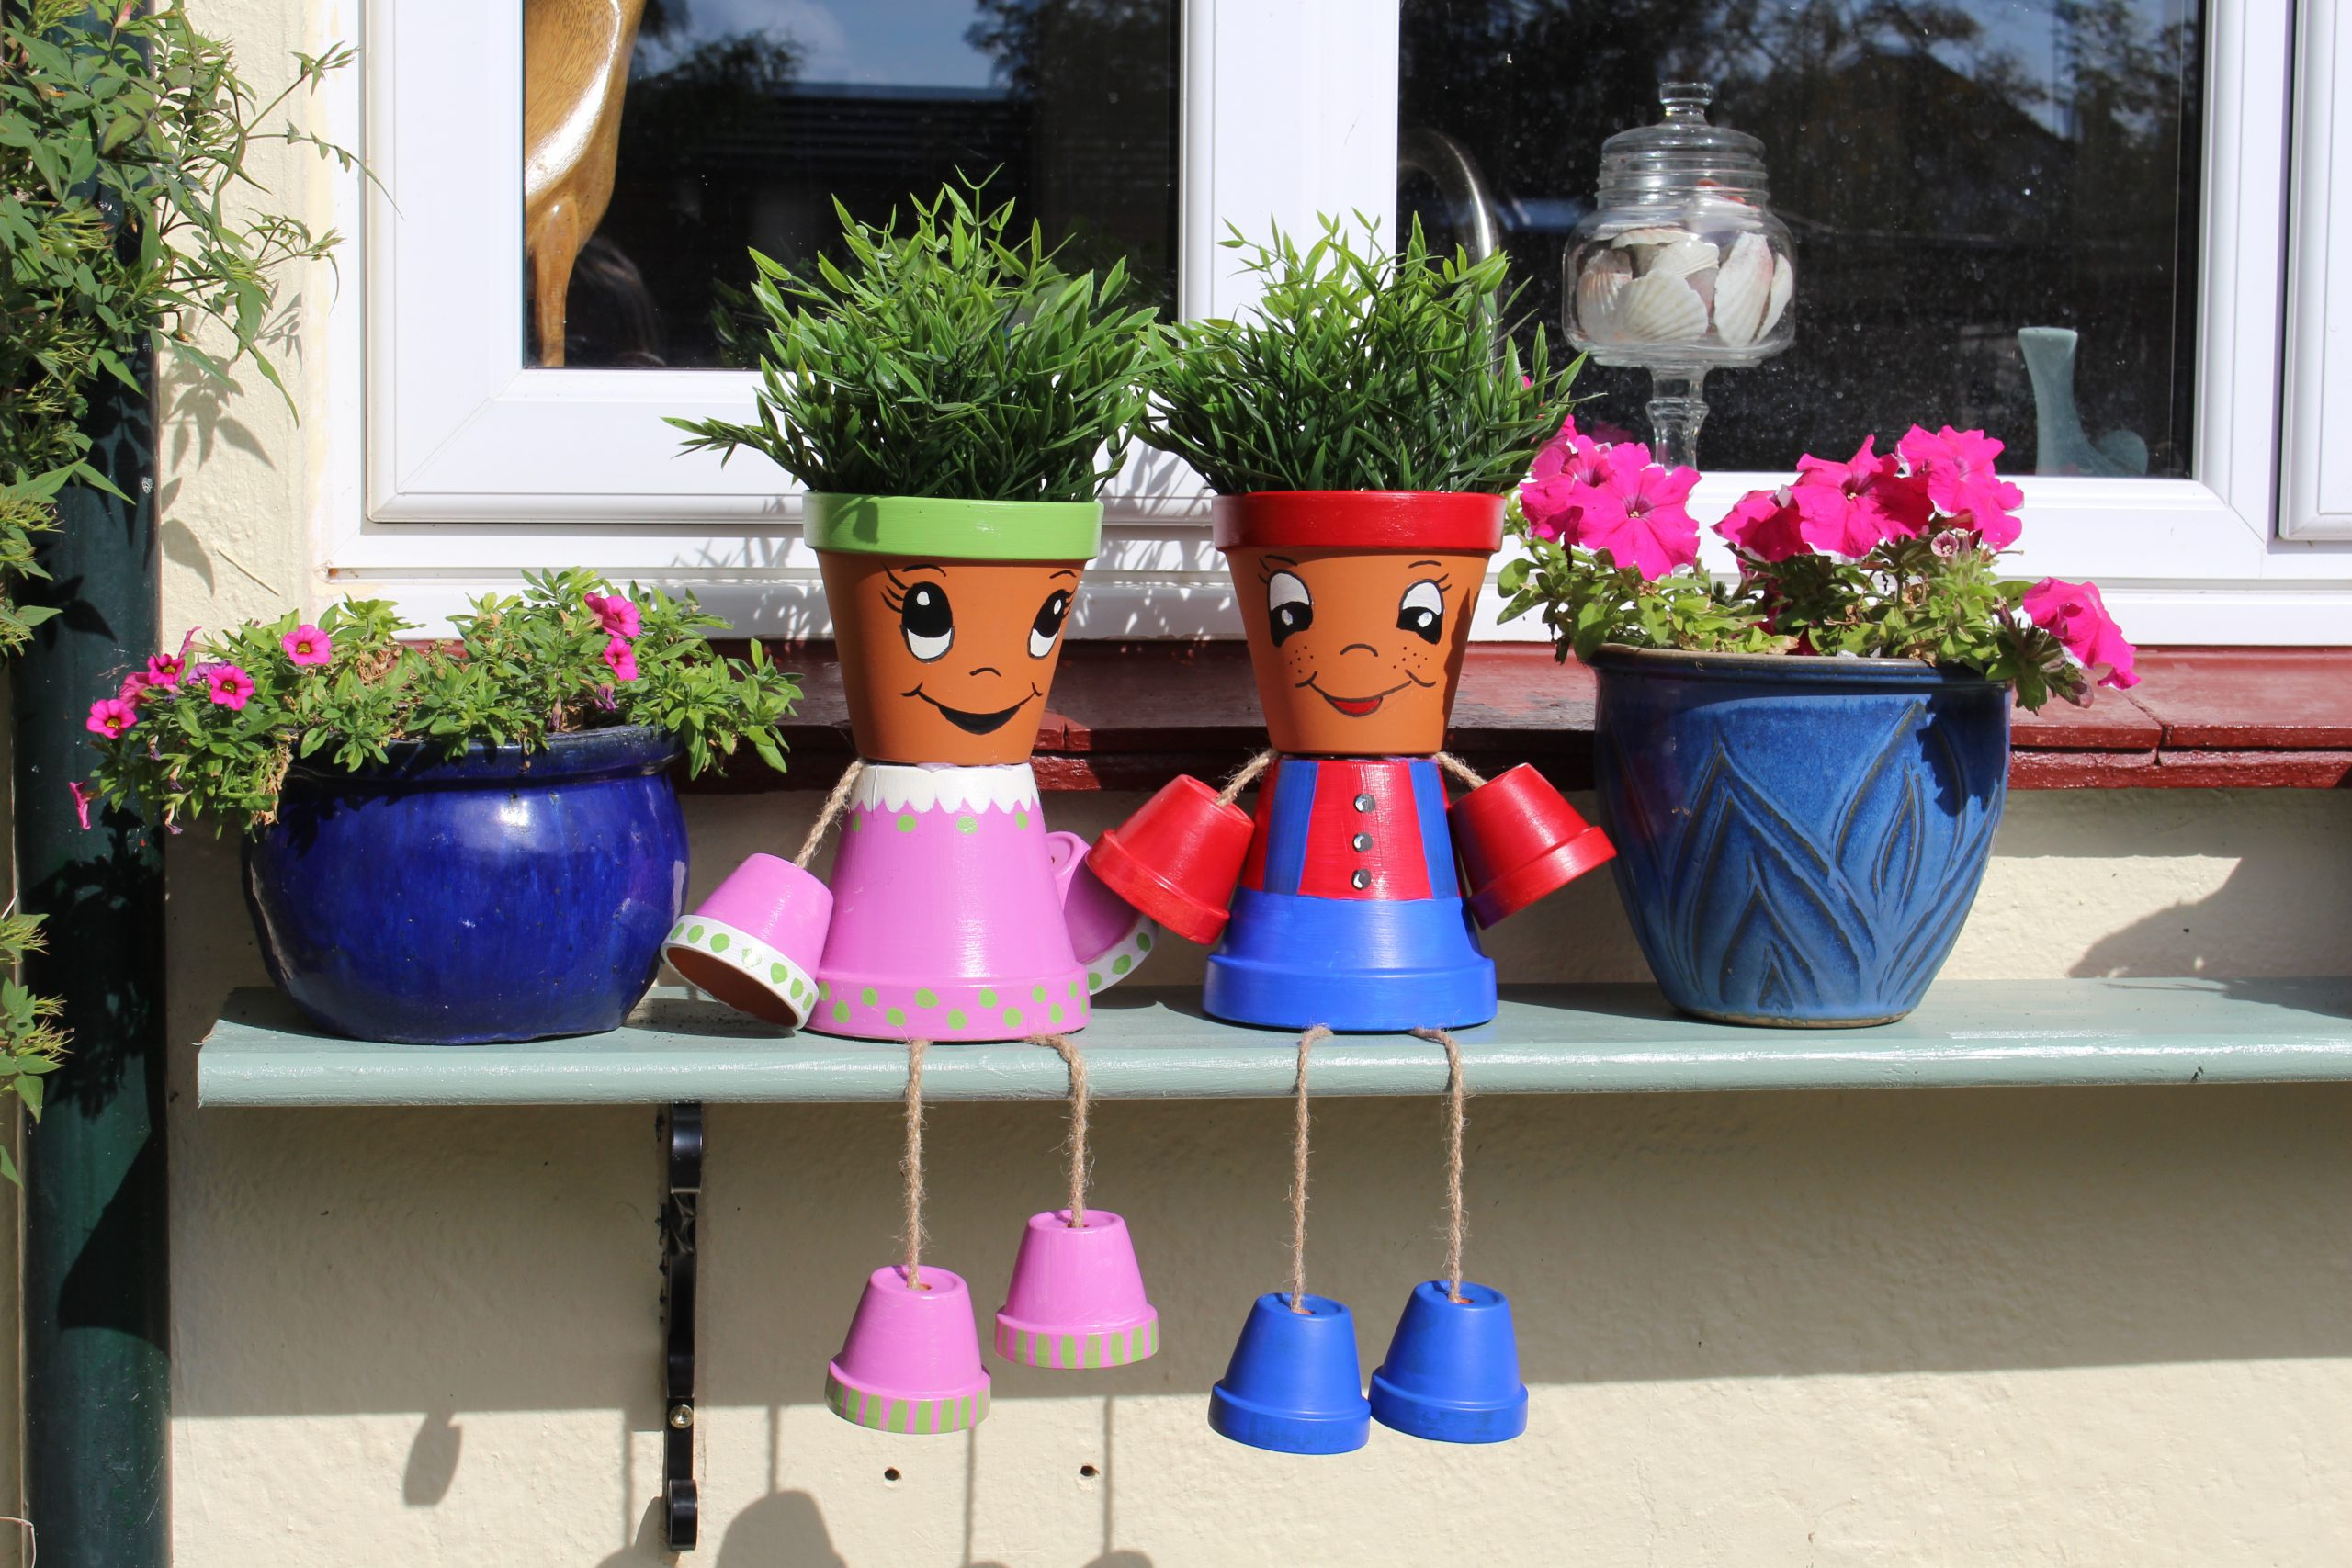 Making your own flower pot people is easier than you think!  There are so many cute designs to chose from - from scarecrows to minions, the possibilities are endless.   Check out how you make make your own DIY flower pot person from some basic terra cotta plant pots and brighten up your garden.  #terra cotta #planter #plant #flowerpot #garden #garden ideas